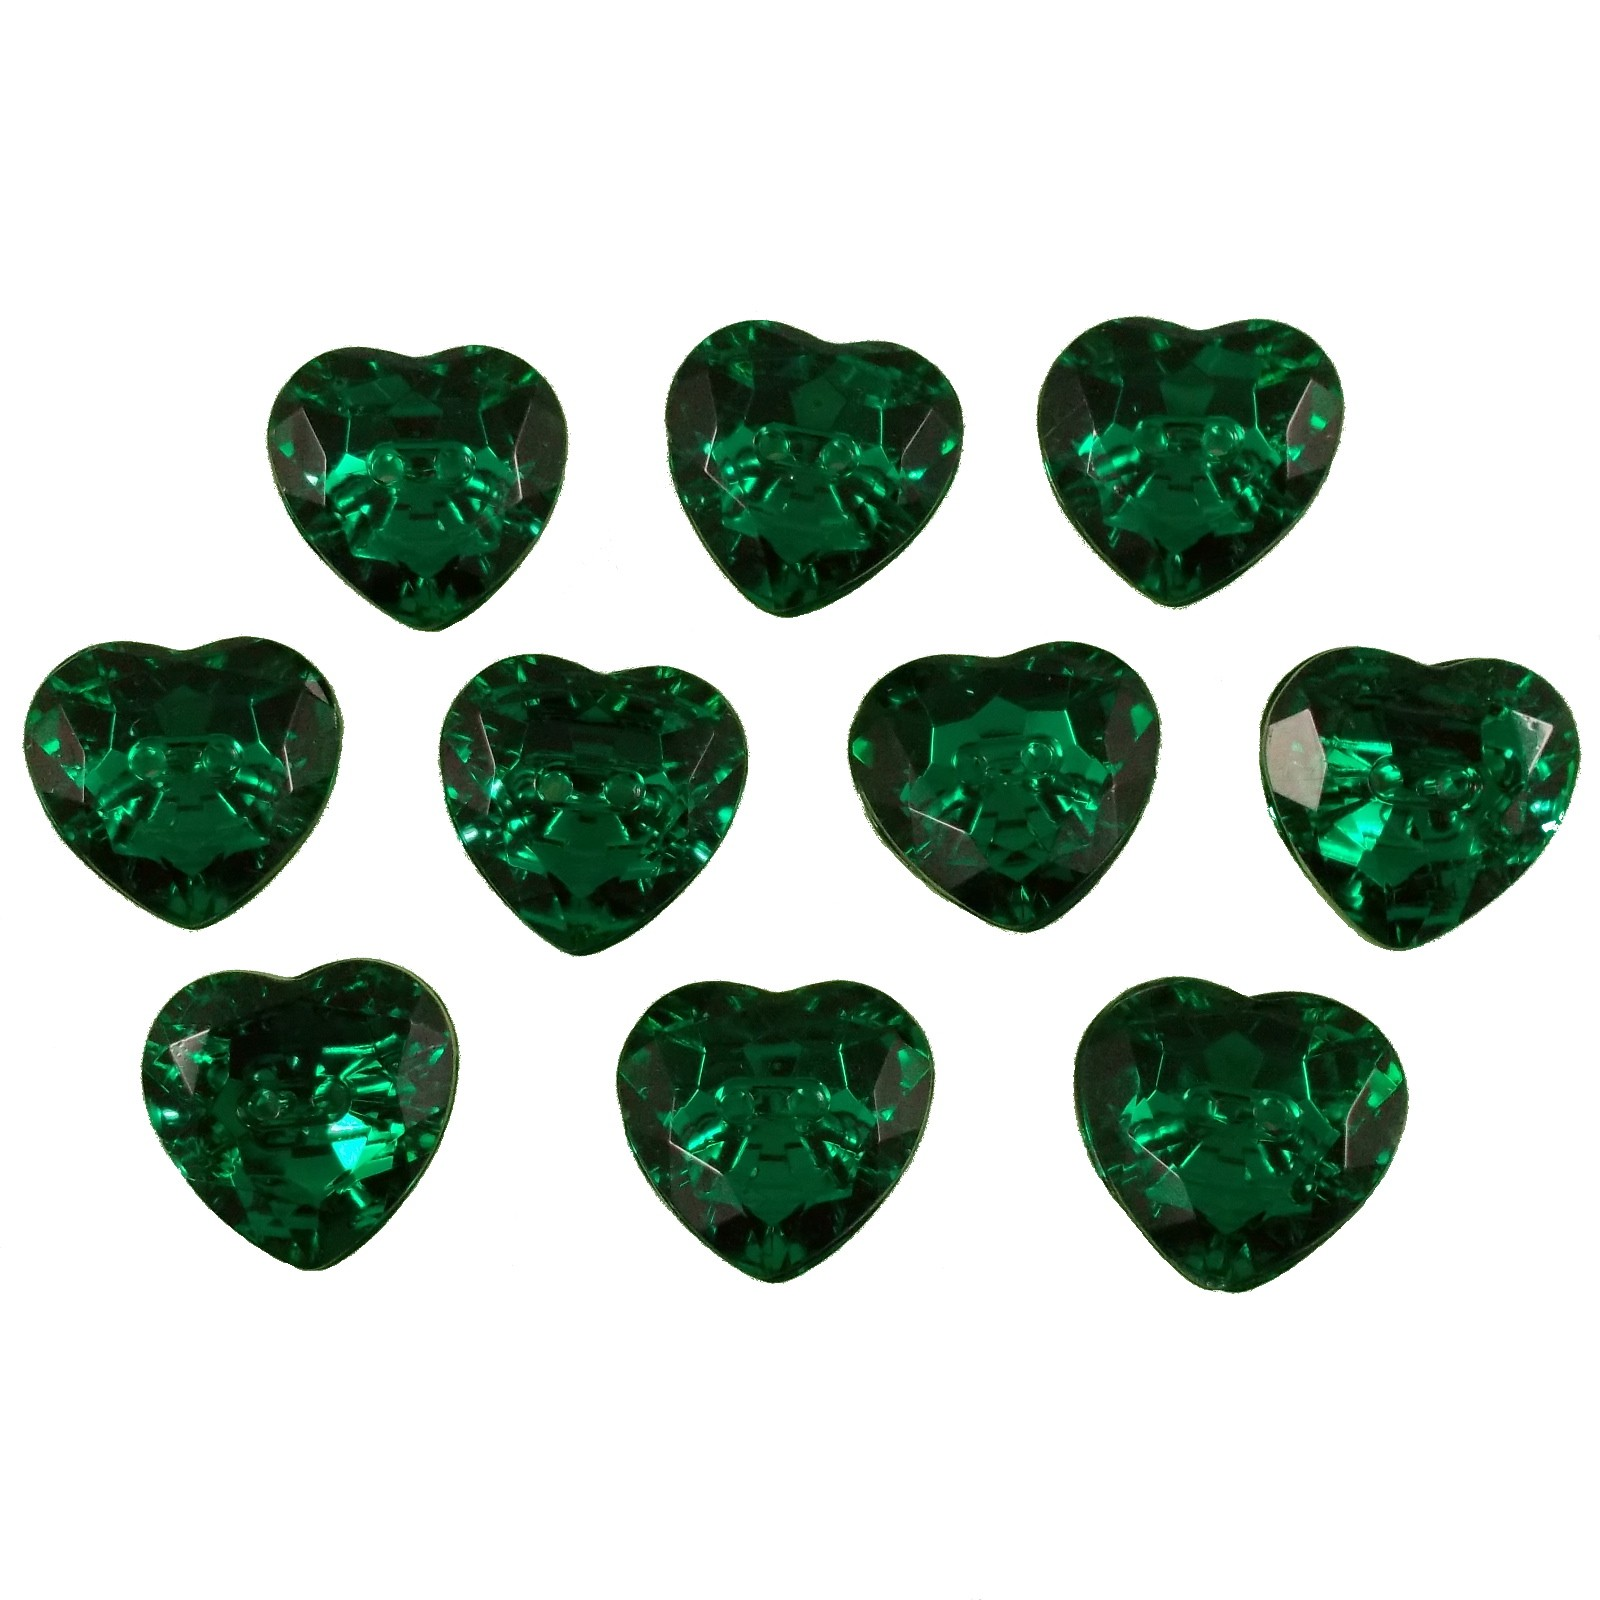 Acrylic Crystal Effect Heart Shape Buttons 12mm Green Pack of 10